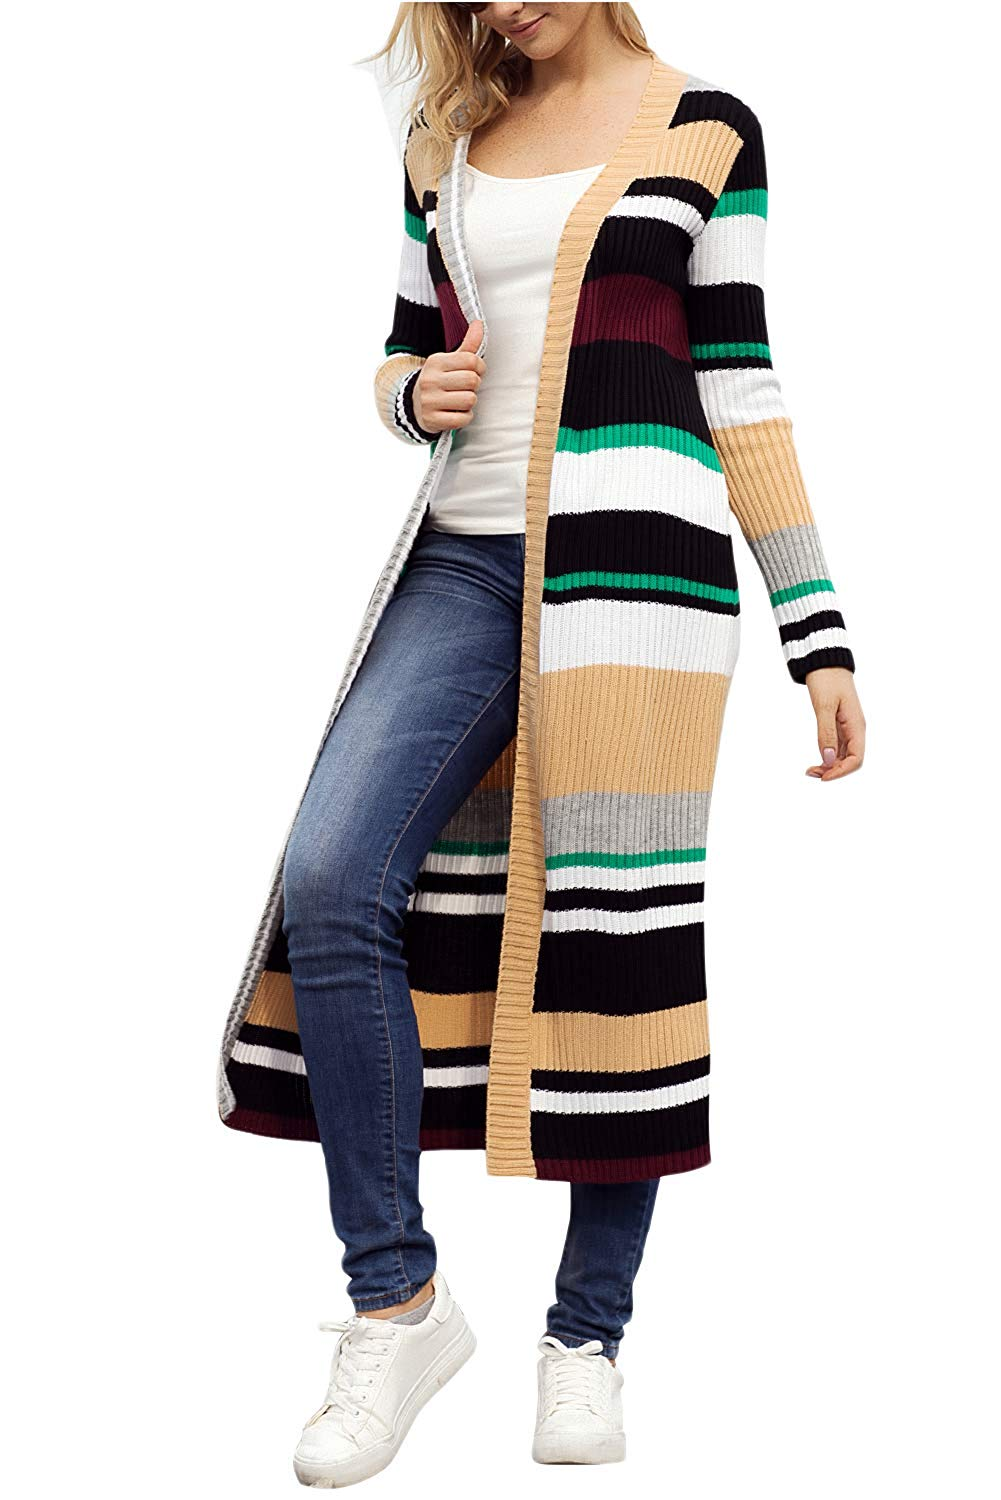 281084b7c5 Get Quotations · CILKOO Womens Colorful Striped Open Front Chunky Long Cardigan  Sweater(S-XXL)